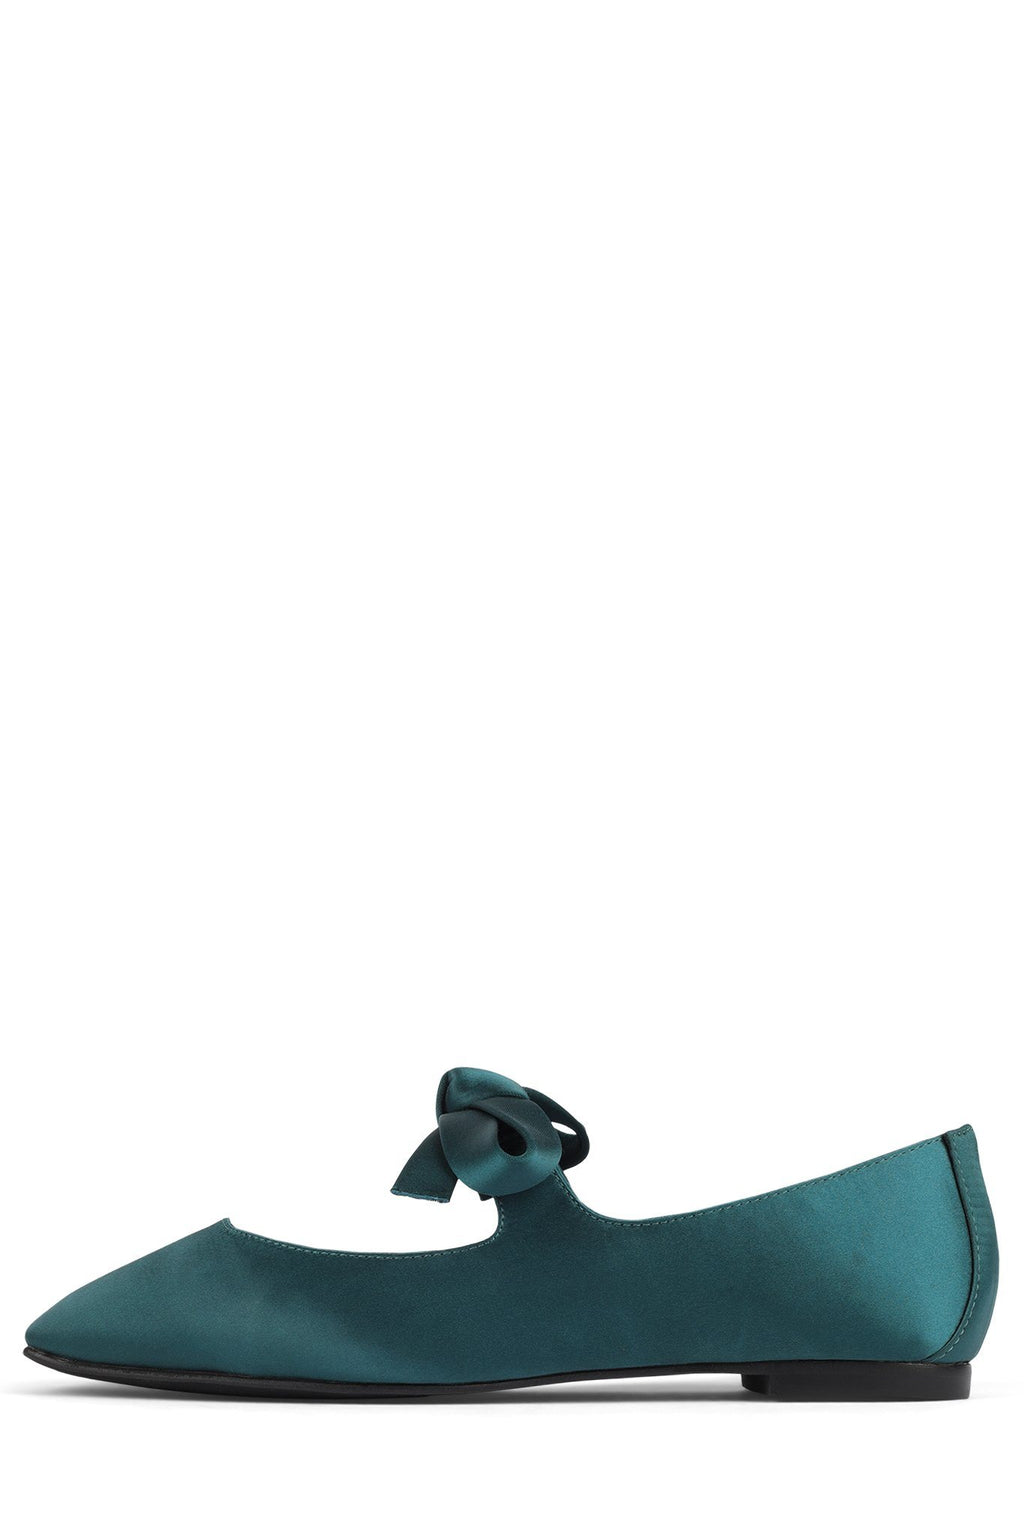 AMIT-CT Flat YYH Teal Satin 6